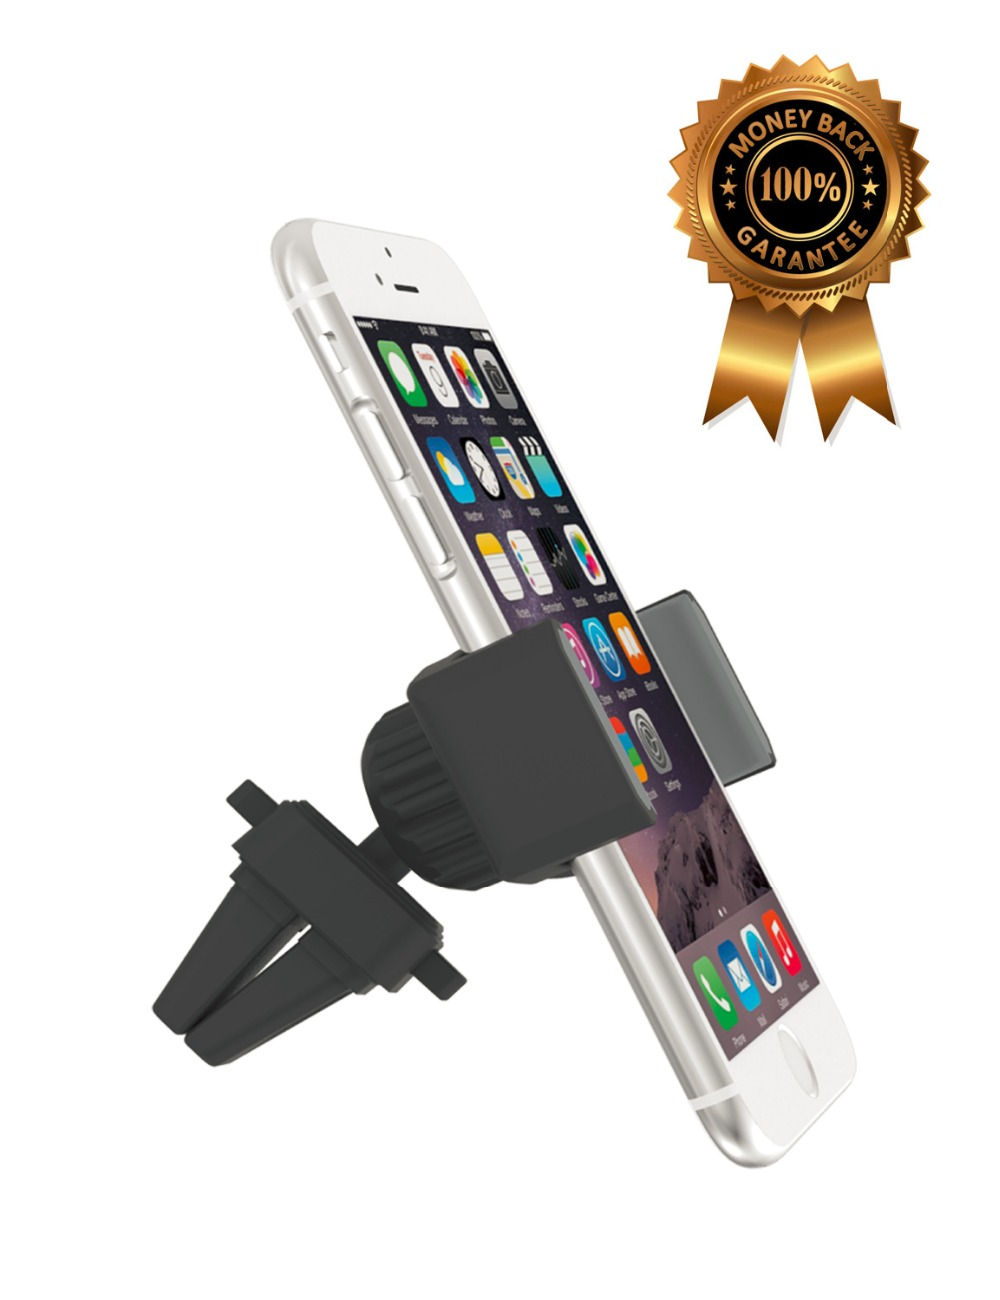 Car Mount, APPS2CAR 360 Degree Universal Holder Air Vent Mount cellphone Dock Mobile Phone Holder for iPhone 6S 5 ,K+-AVS(China (Mainland))